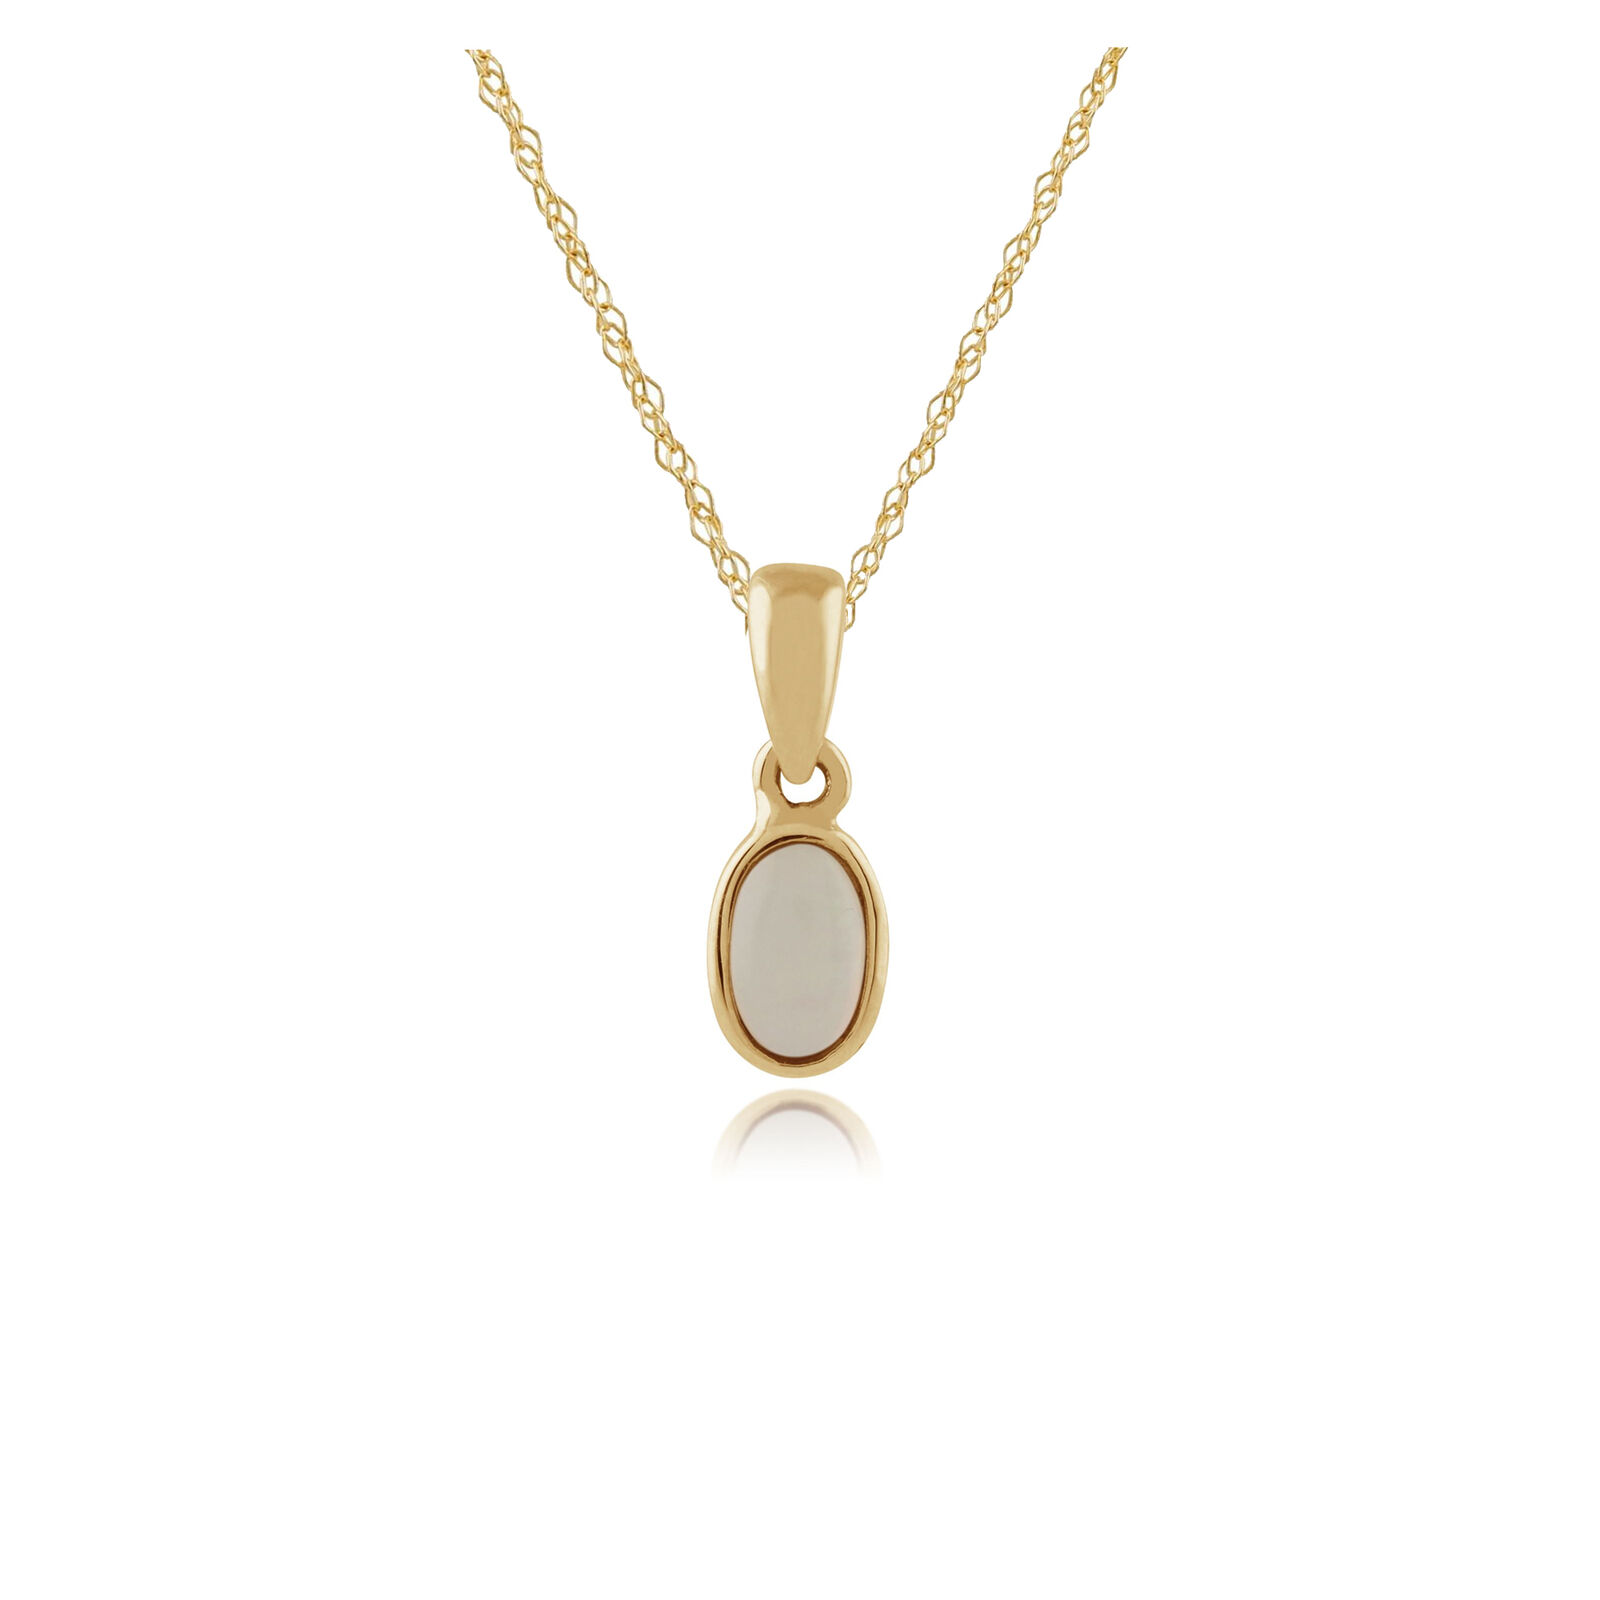 Gemondo 9ct Yellow gold Framed Oval 0.15ct Opal Pendant on Chain